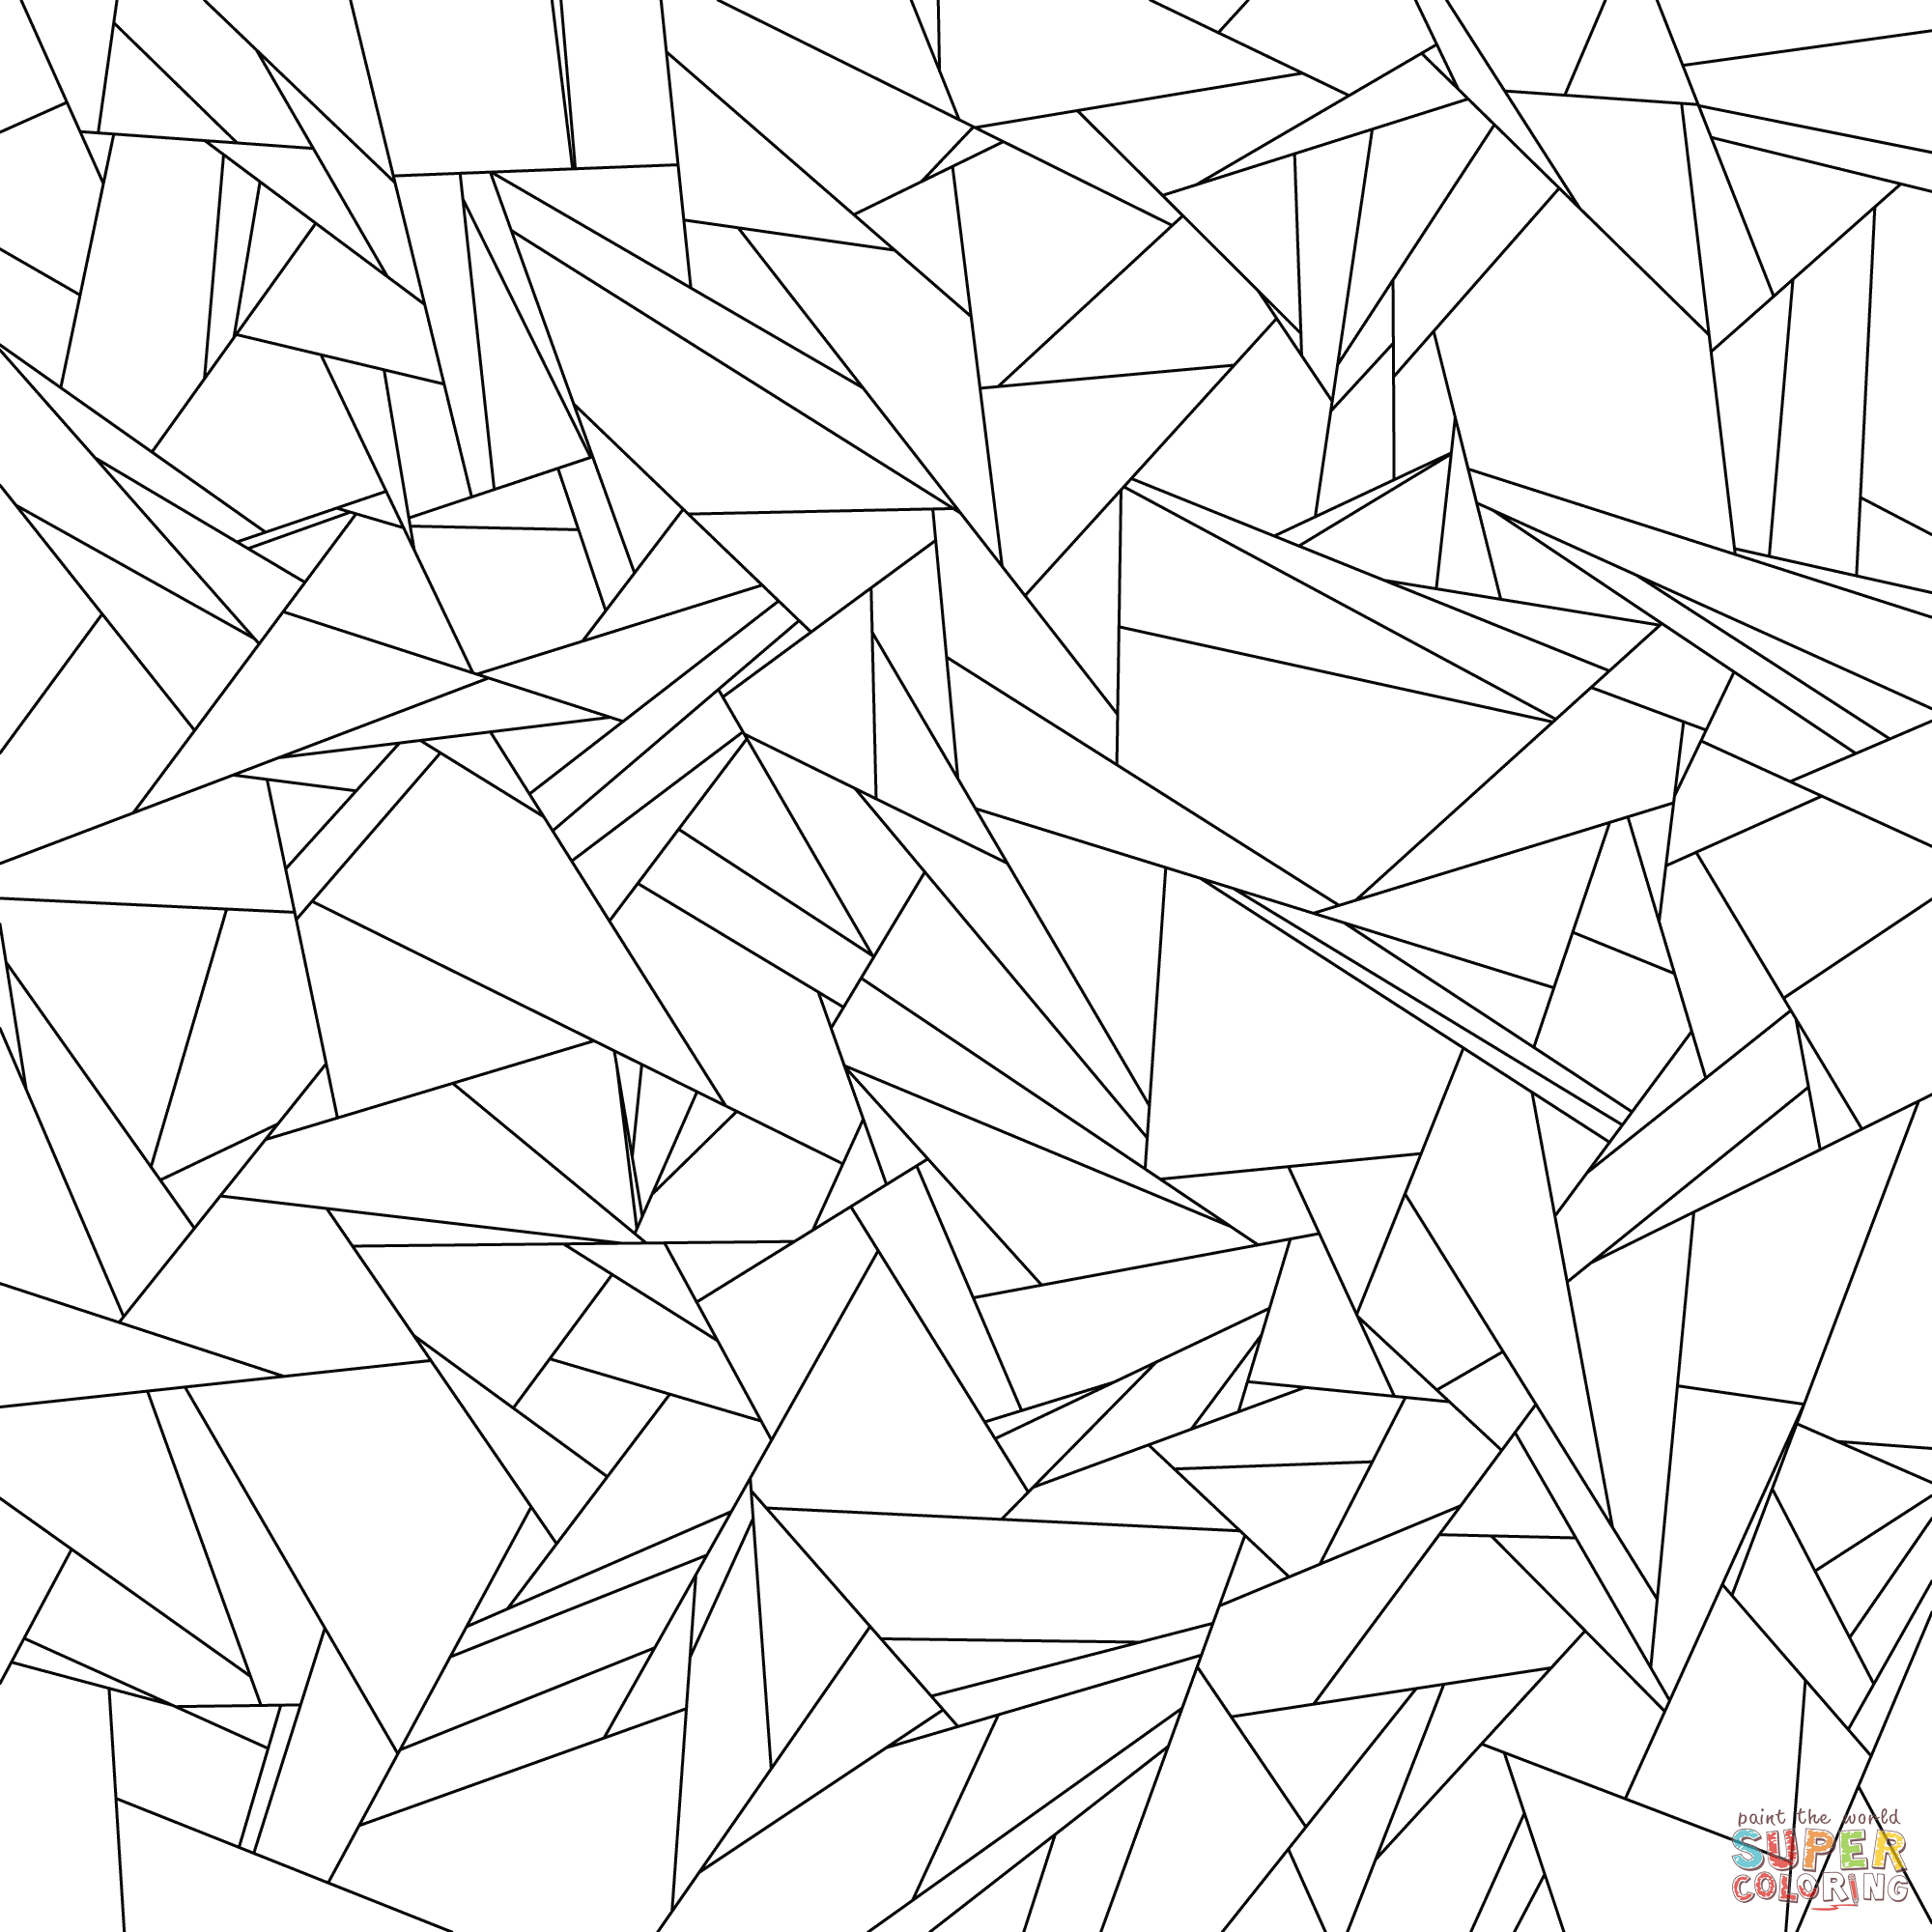 printable tessellation patterns to color gilbert tessellation coloring page free printable printable color patterns to tessellation